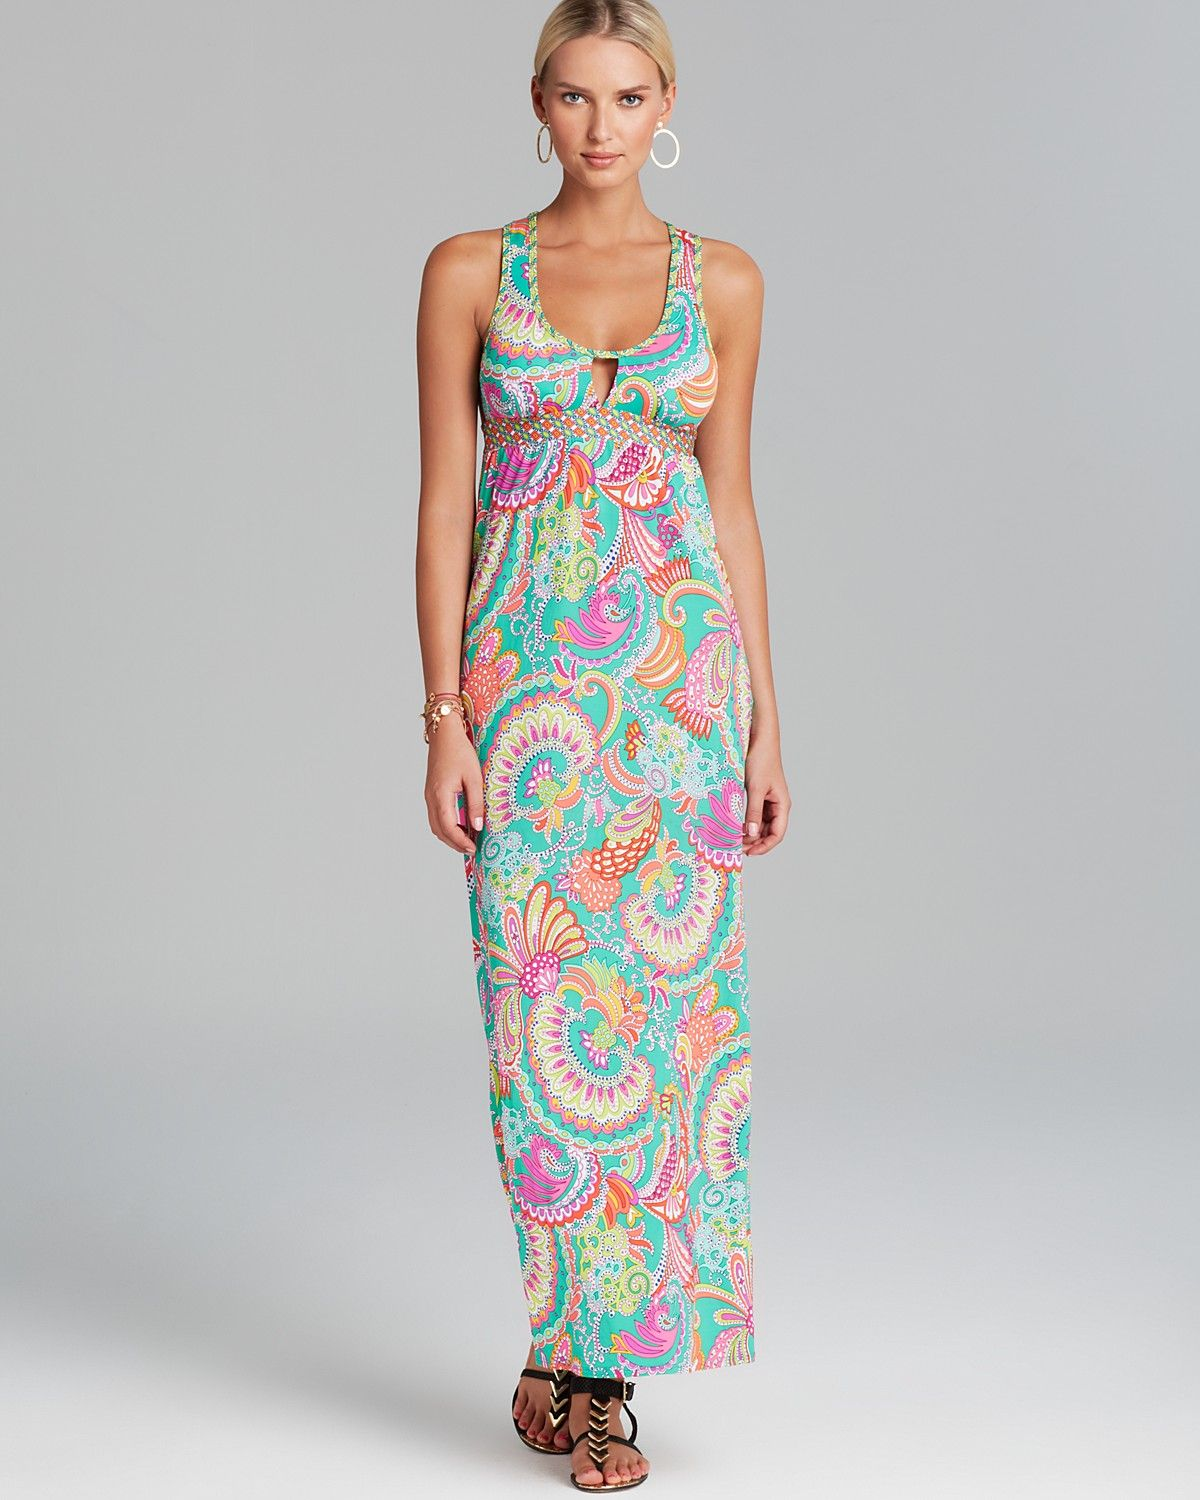 Trina Turk Festival Folkloric Knit Covers Long Swim Cover Up Maxi Dress | Bloomingdale's